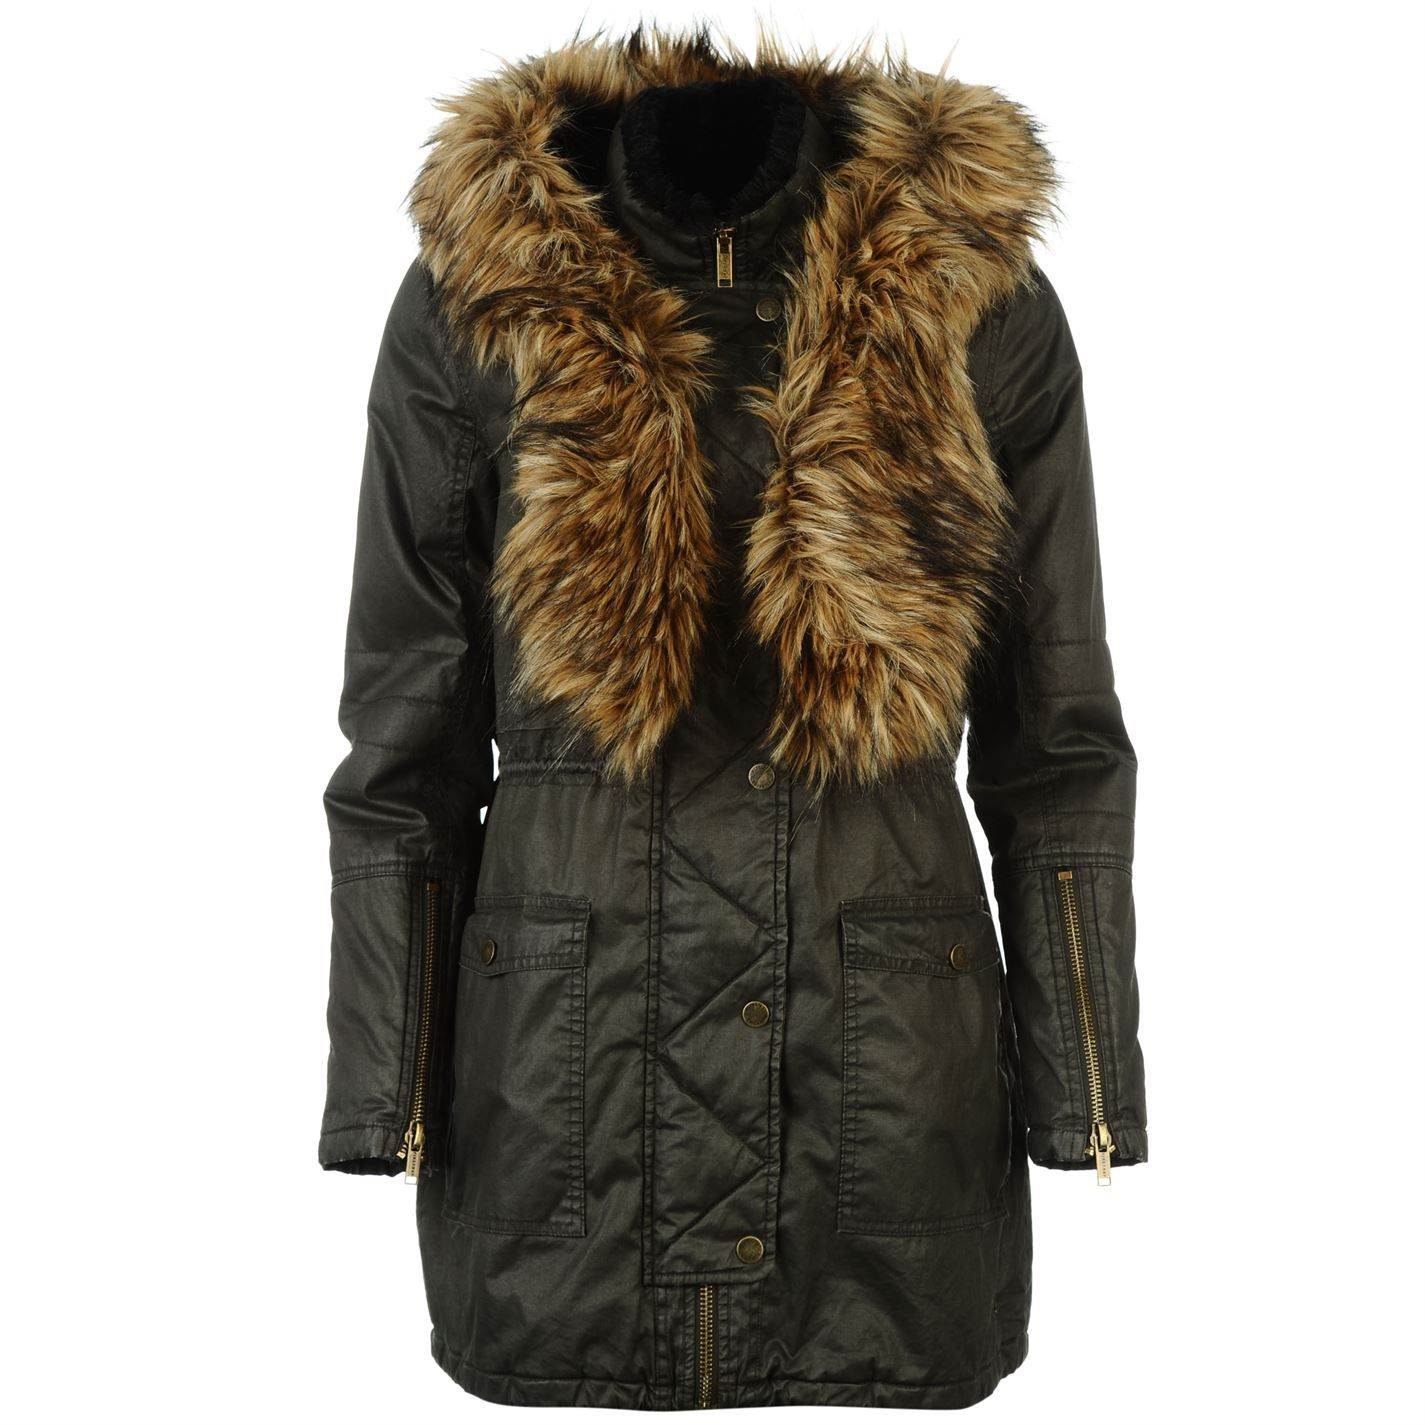 Firetrap | Firetrap Waxed Parka Jacket Ladies | Ladies Jackets and ...